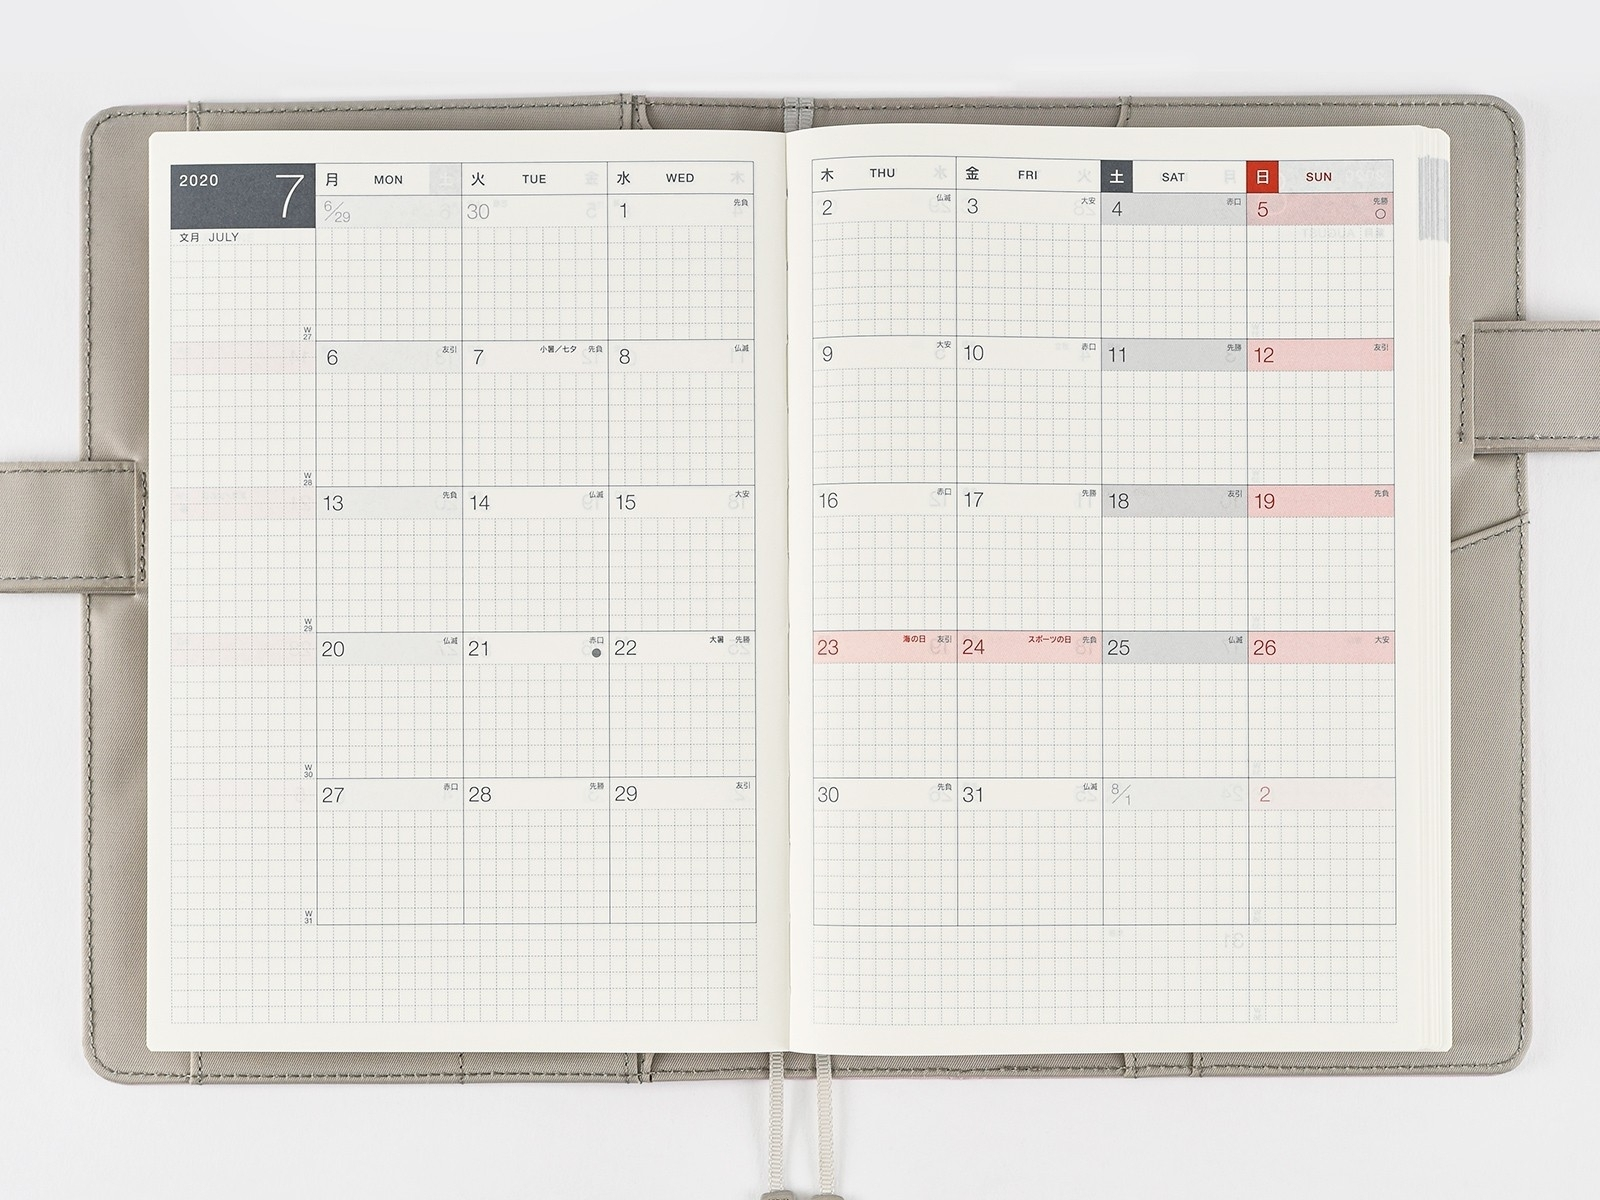 Monthly Calendar With Time Slots 2020 | Calendar Template